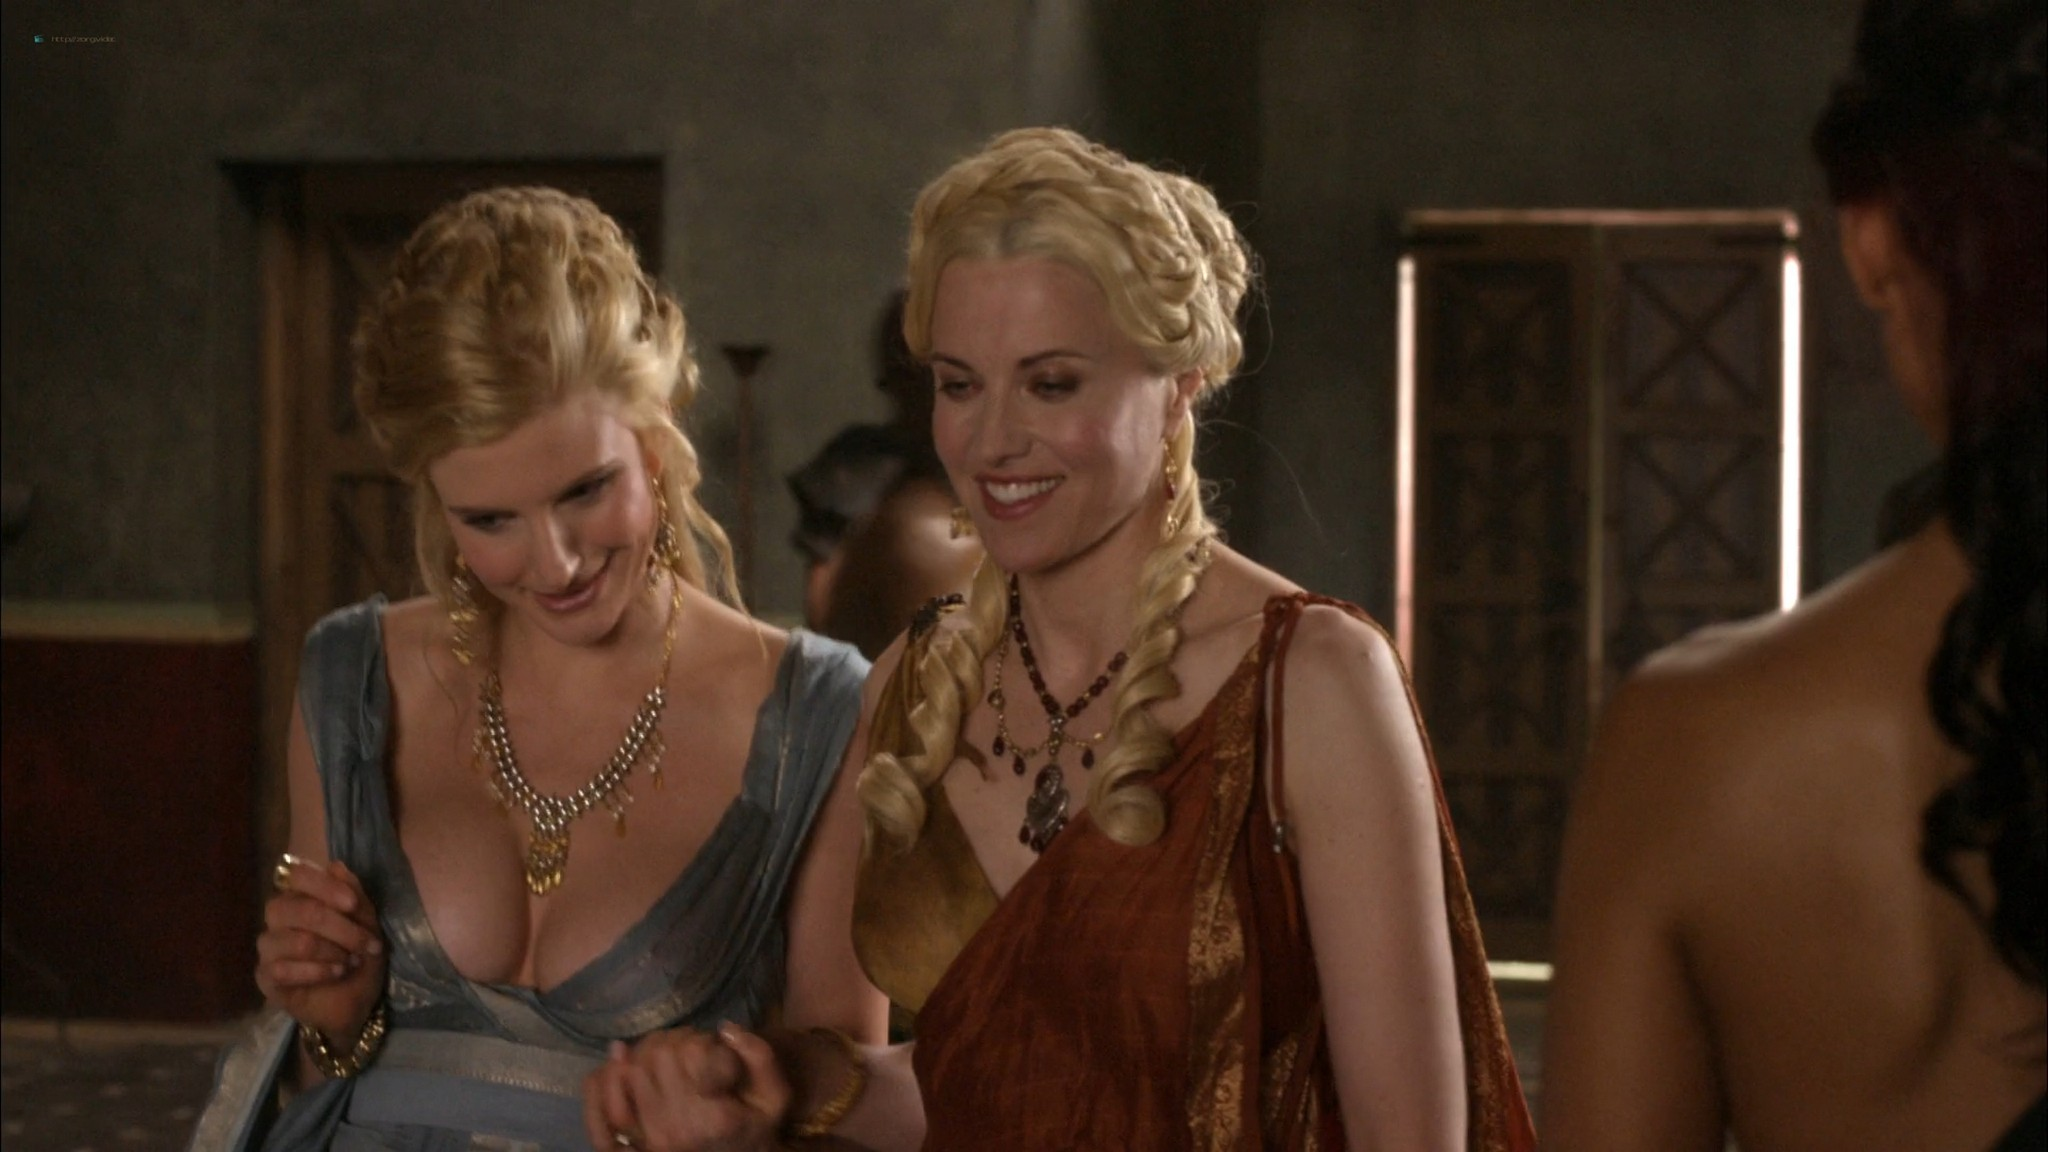 Lucy Lawless hot sex oral Lesley-Ann Brandt and others sexy - Spartacus - The Thing in the Pit (2010) s1e4-5 HD 1080p (7)